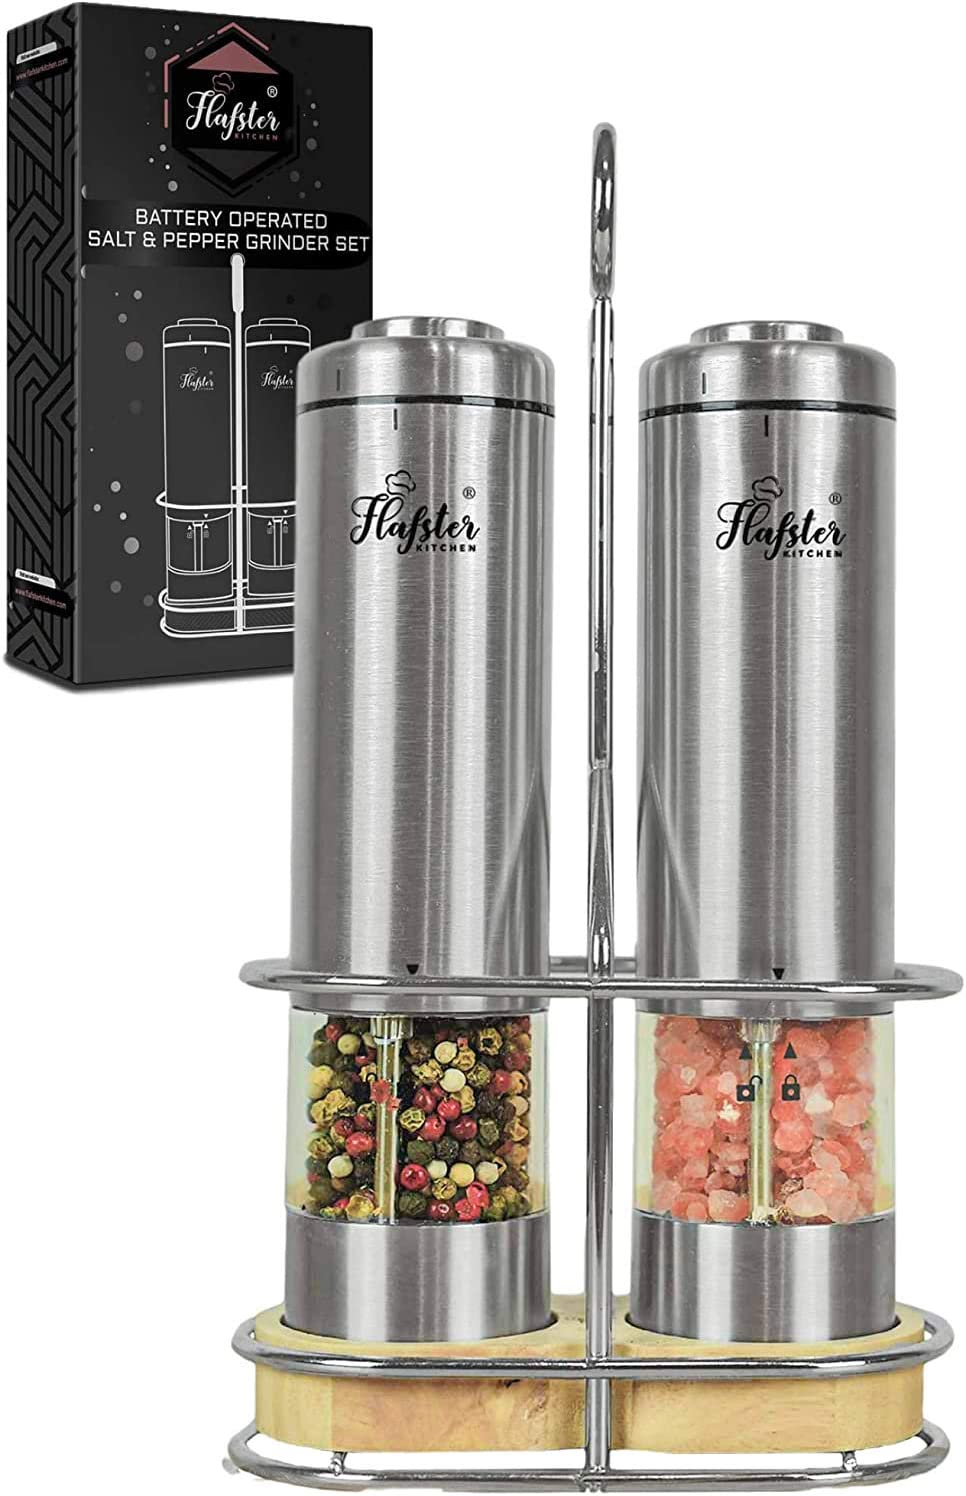 Electric Salt And Pepper Grinder Set Battery Operated Stainless Steel Salt Pepper Mills 2 By Flafster Kitchen Tall Power Shakers With Stand Ceramic Grinders With Lights And Adjustable Coarseness Kitchen Dining